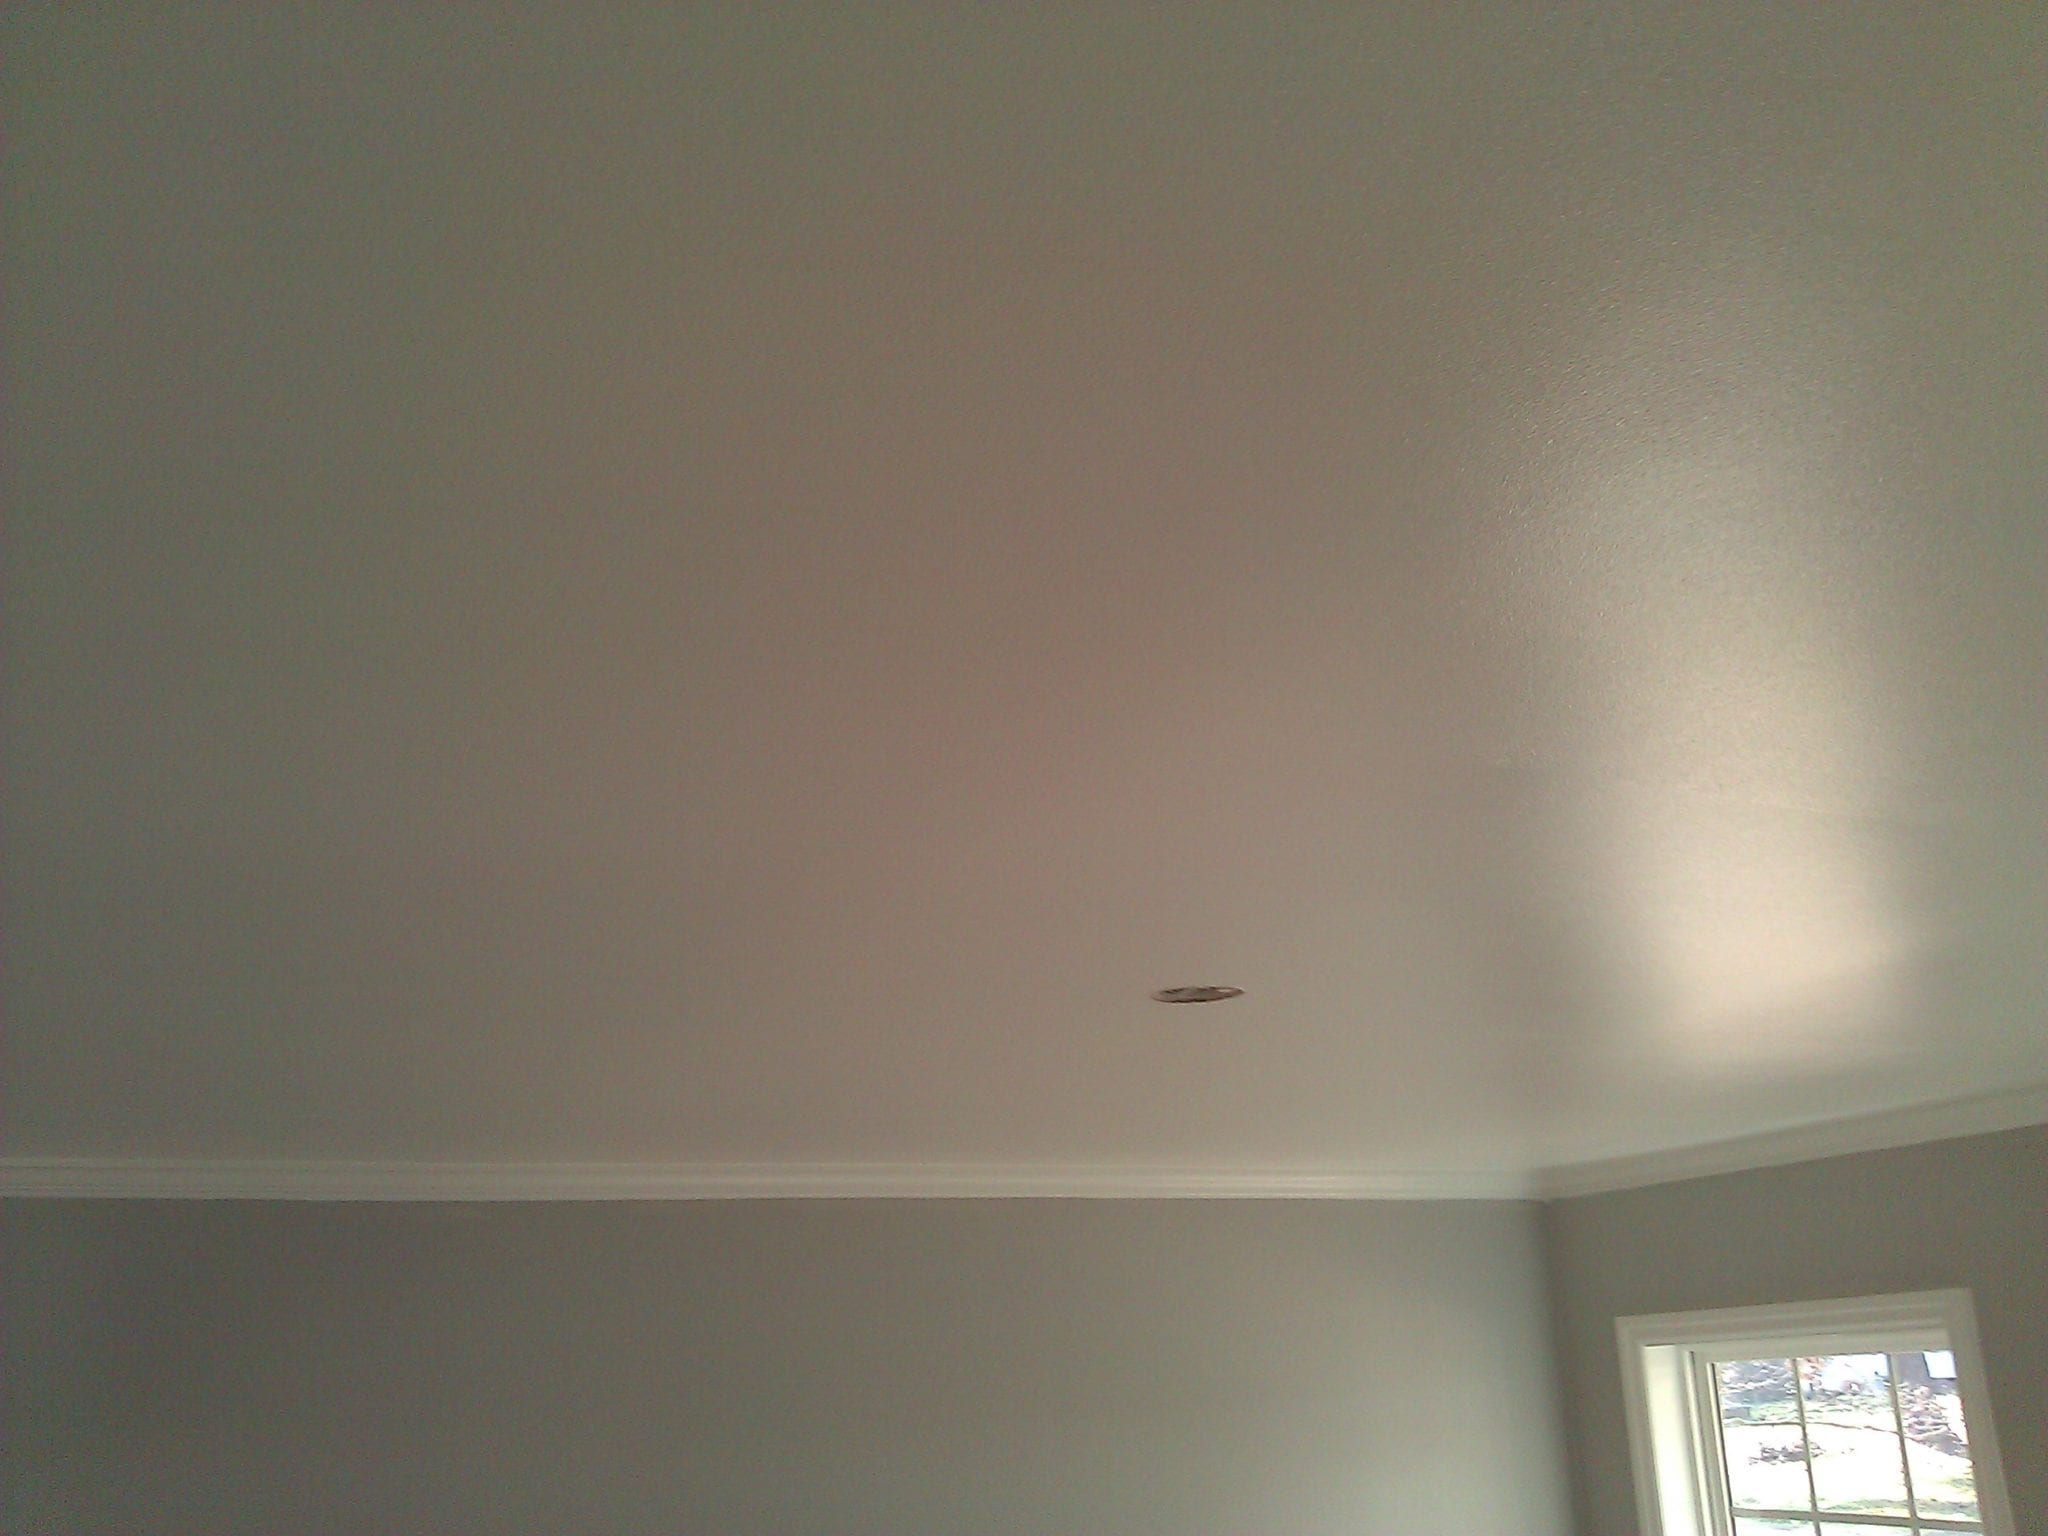 eco spec wb the economic 0 voc paint by benjamin moore